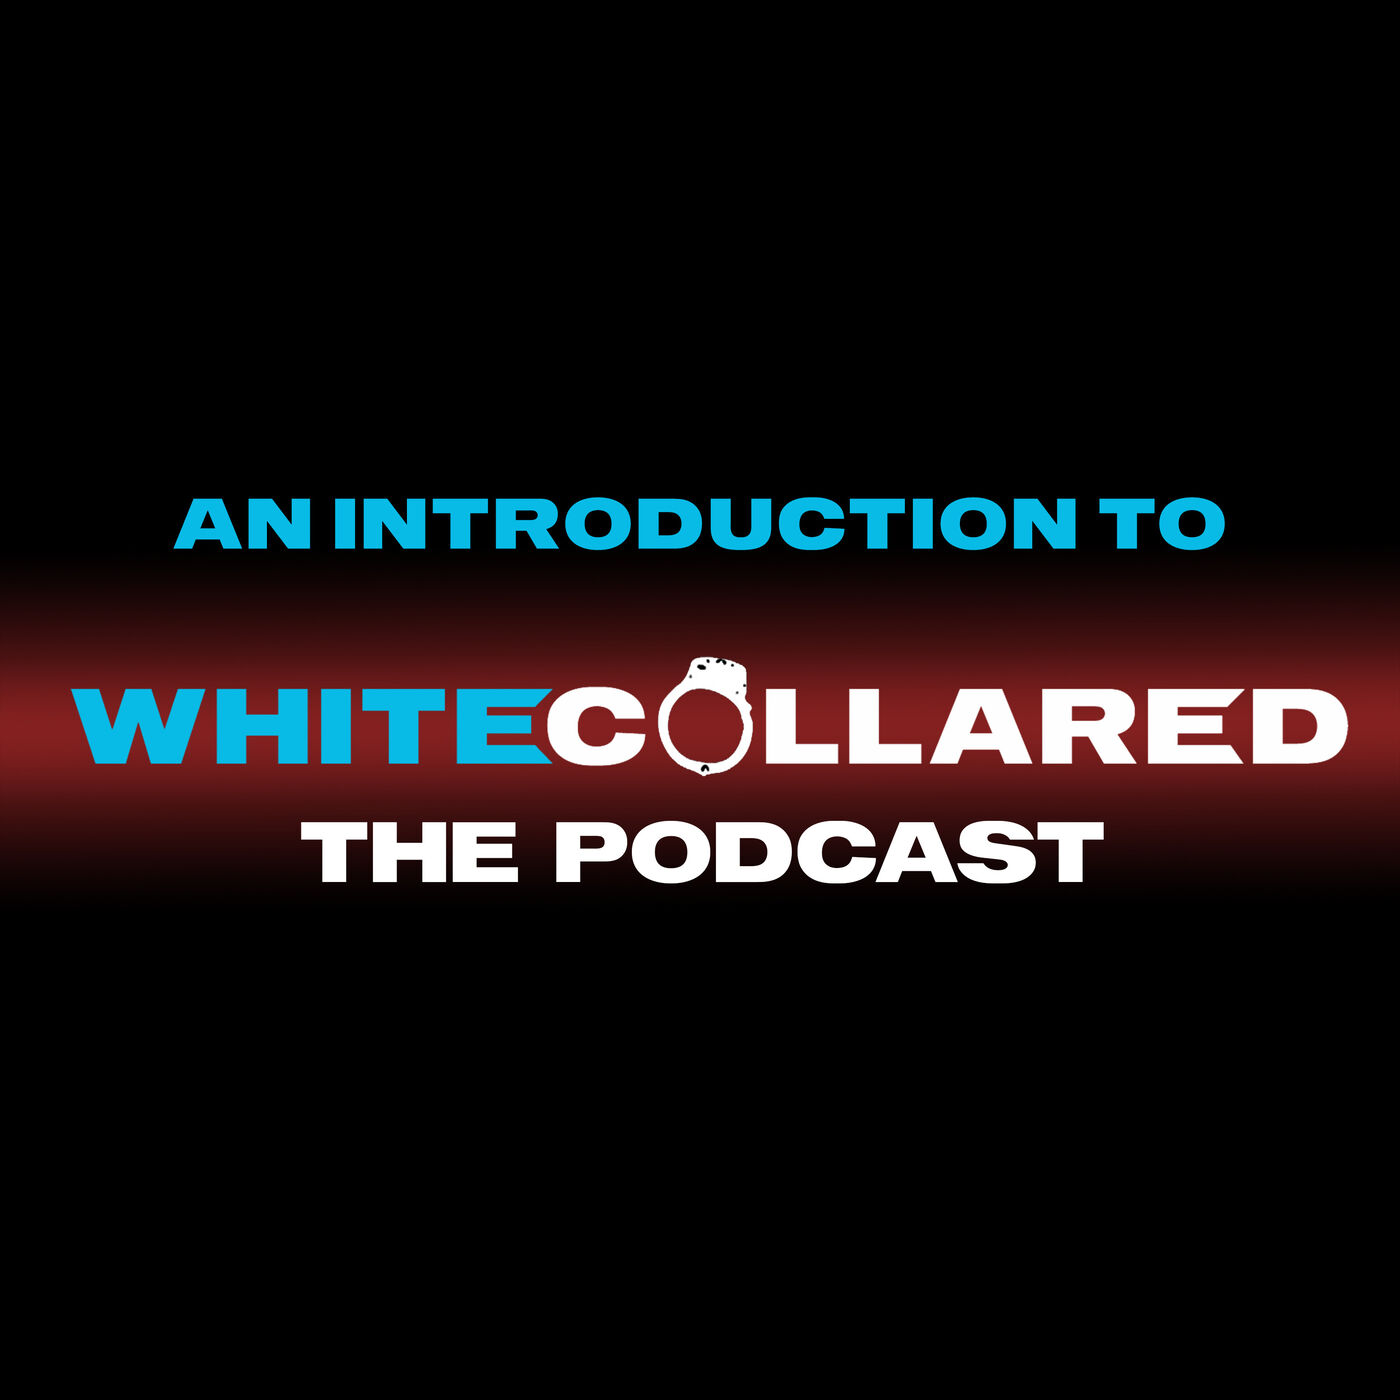 An Introduction to White Collared